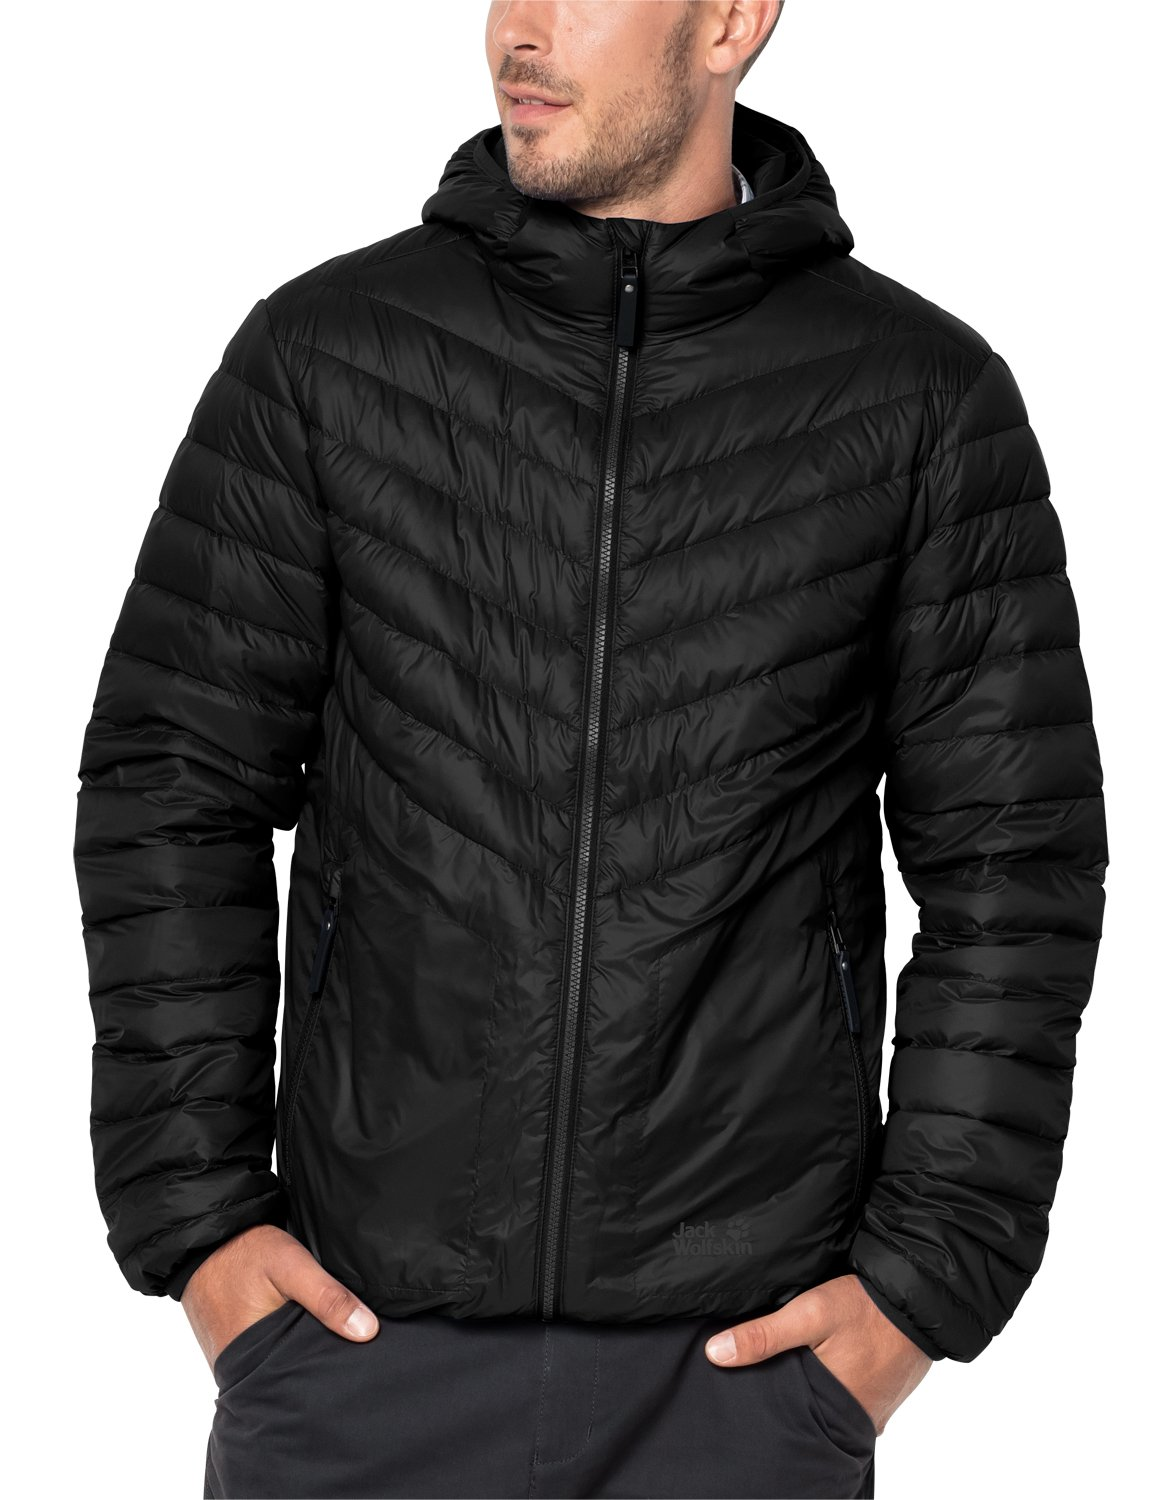 Jack Wolfskin Men's Vista Jacket, 3X-Large, Black